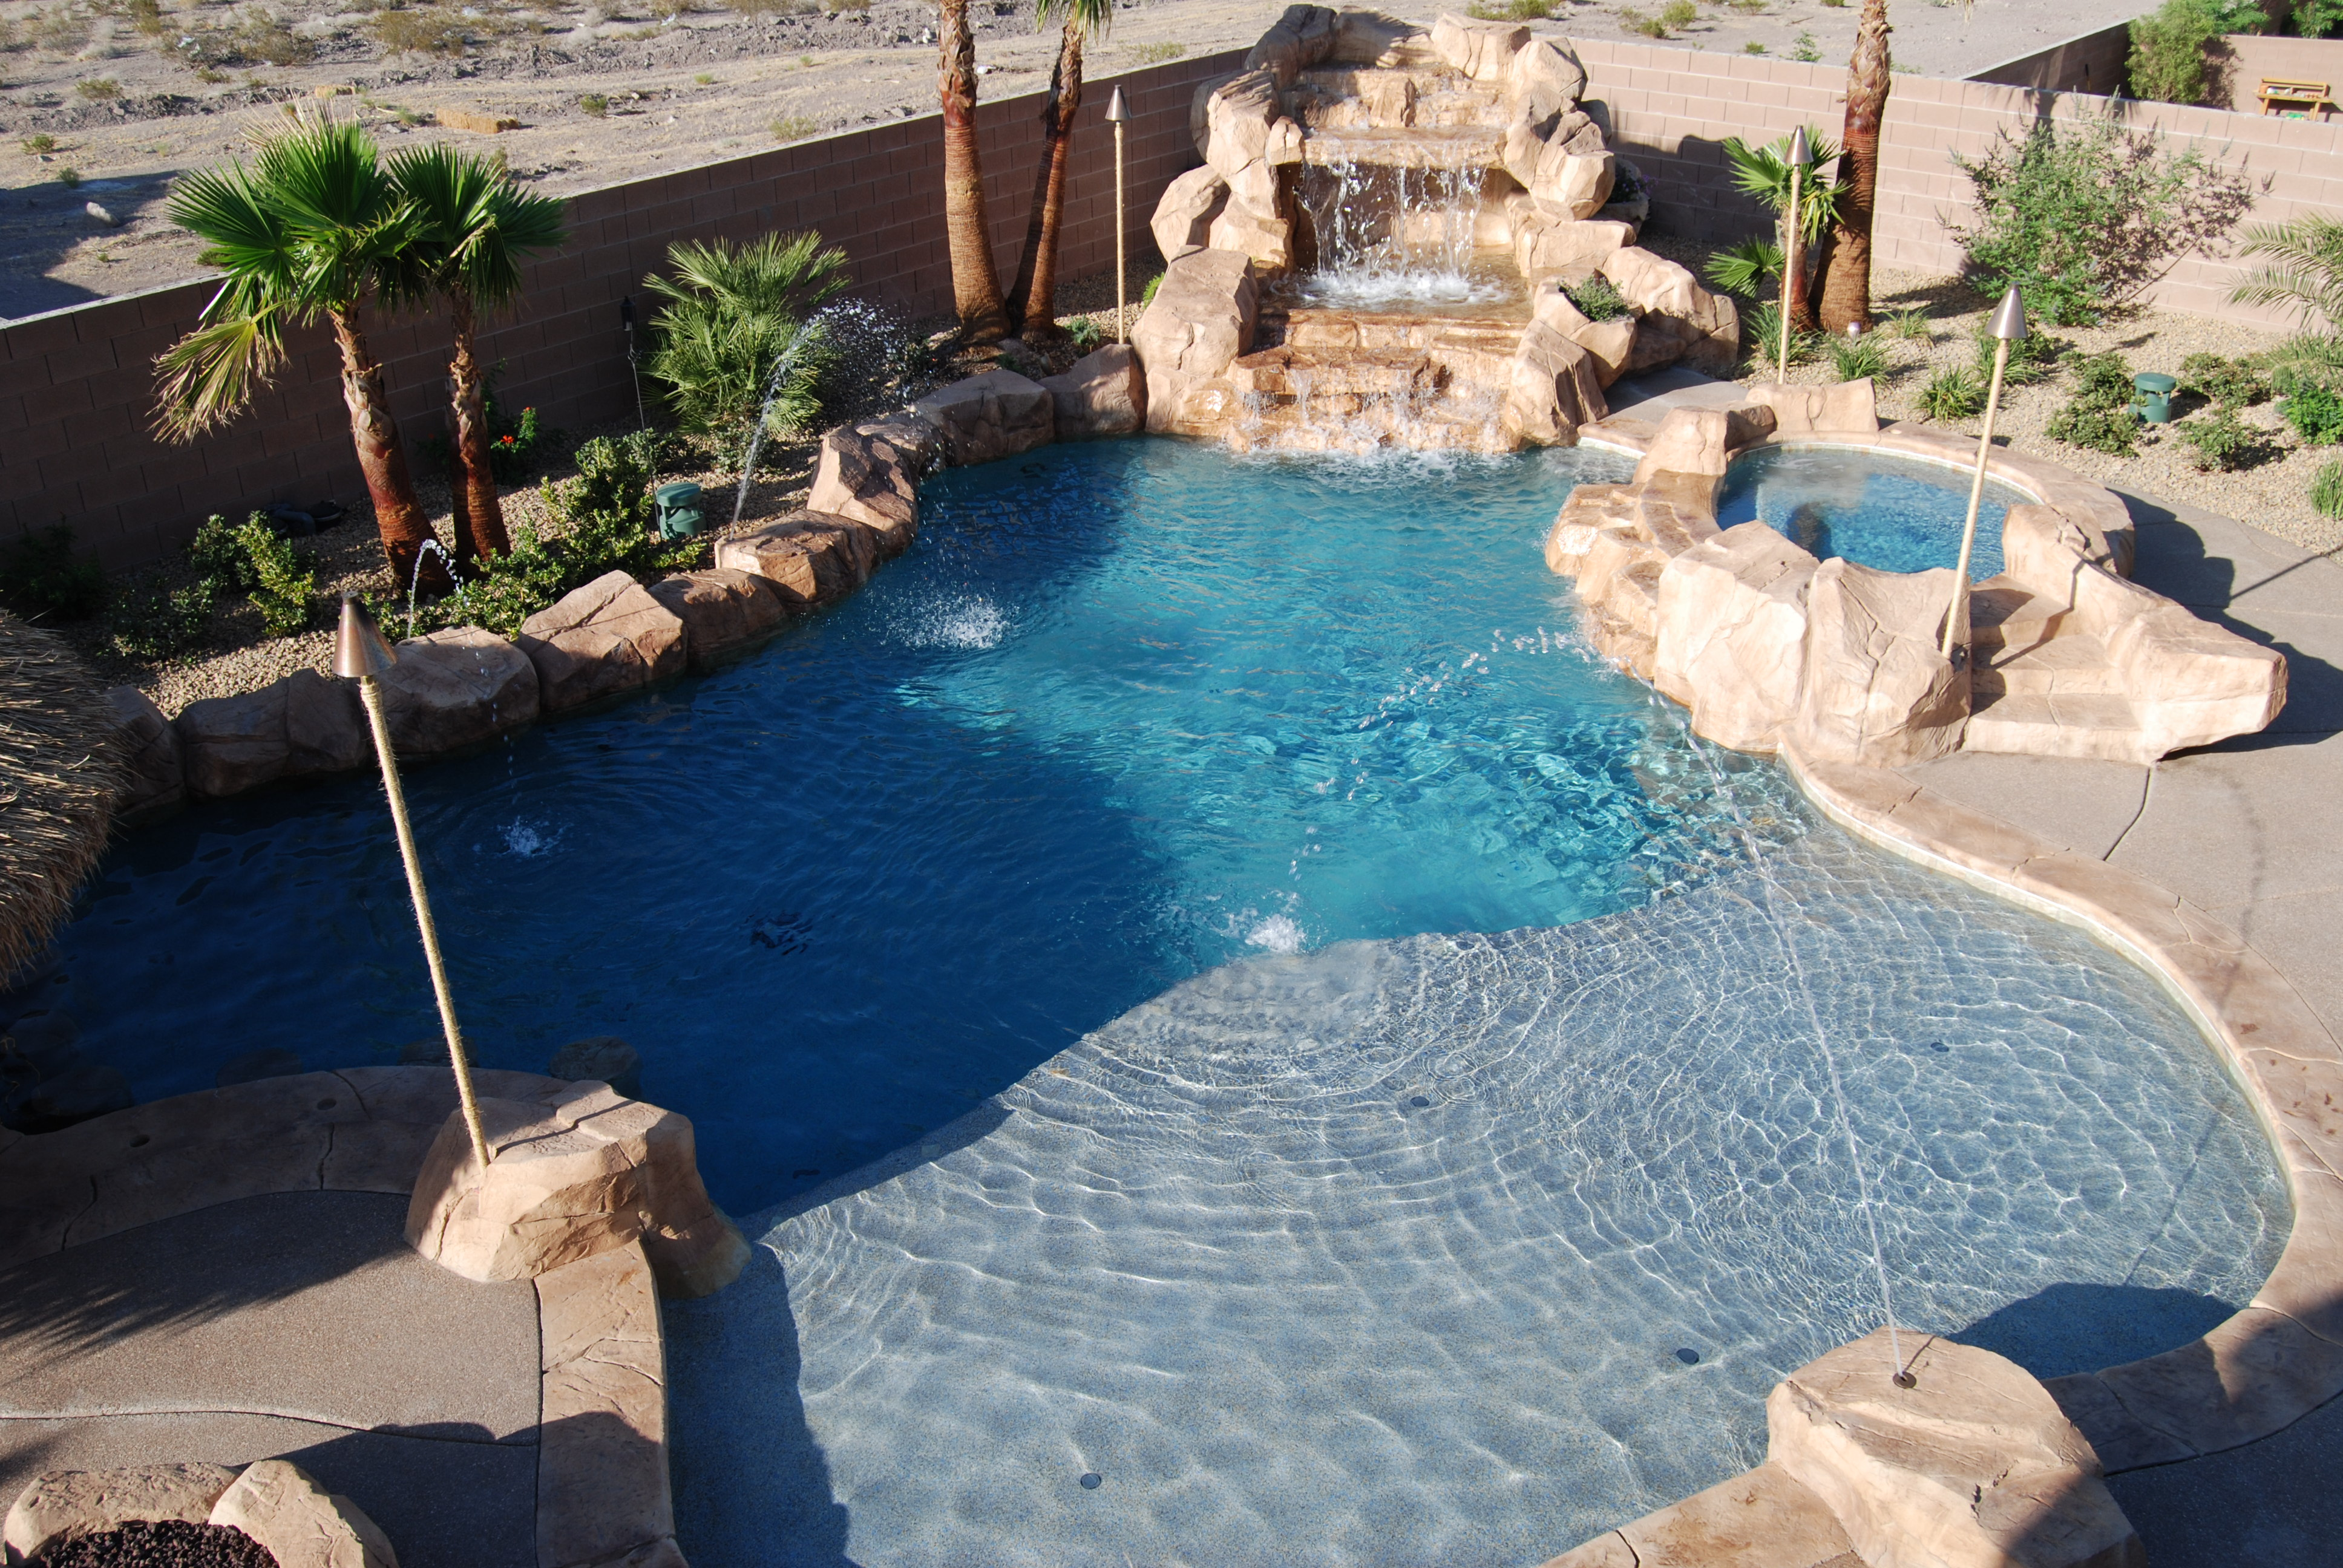 Pool Features Las Vegas Pool Construction Company Pool